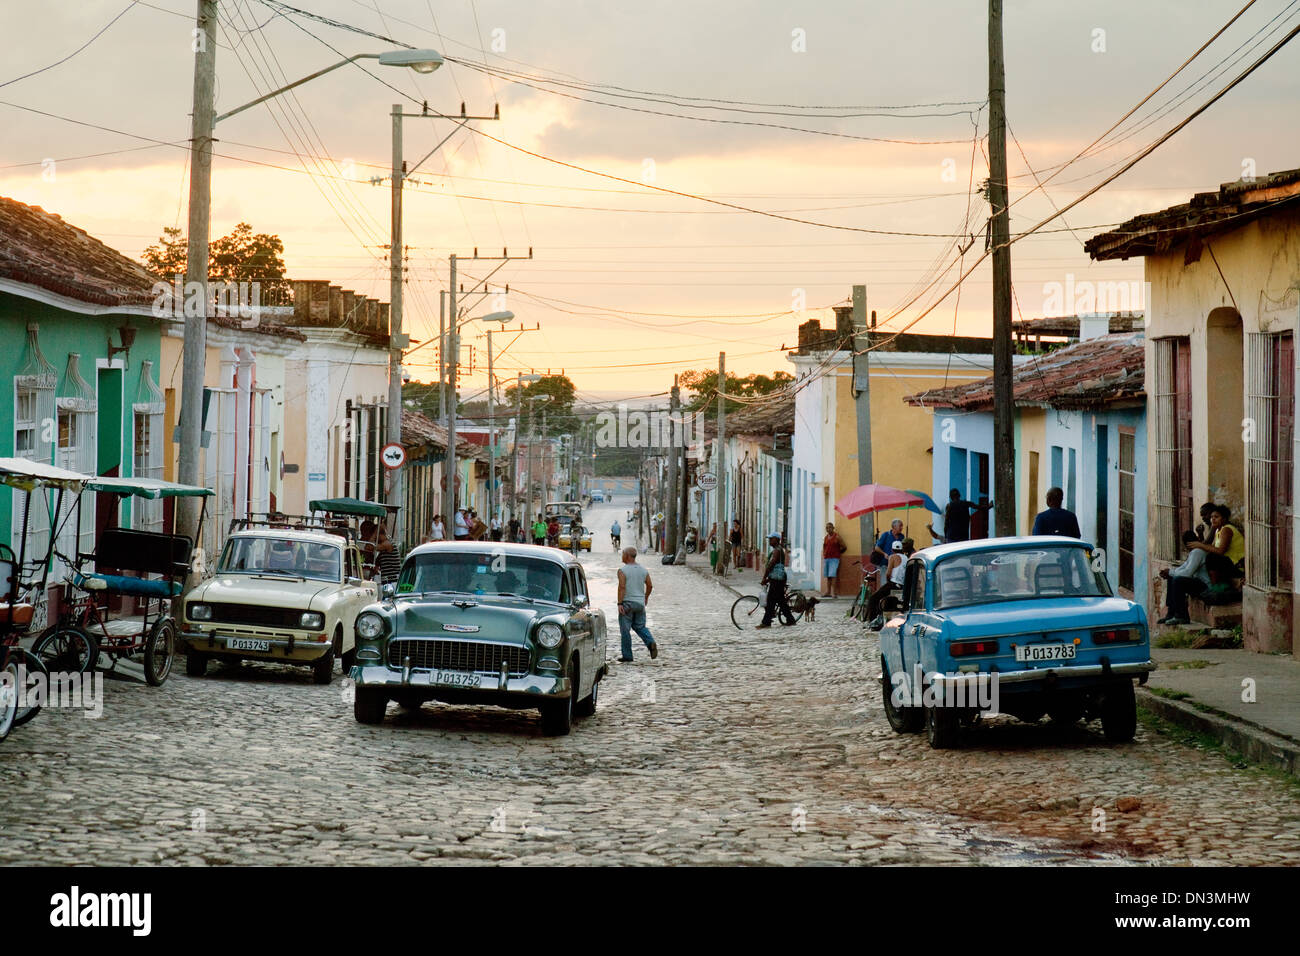 Trinidad, Cuba -  a sunset street scene with old American car on the street,  Trinidad, Cuba, Caribbean, Latin America - Stock Image